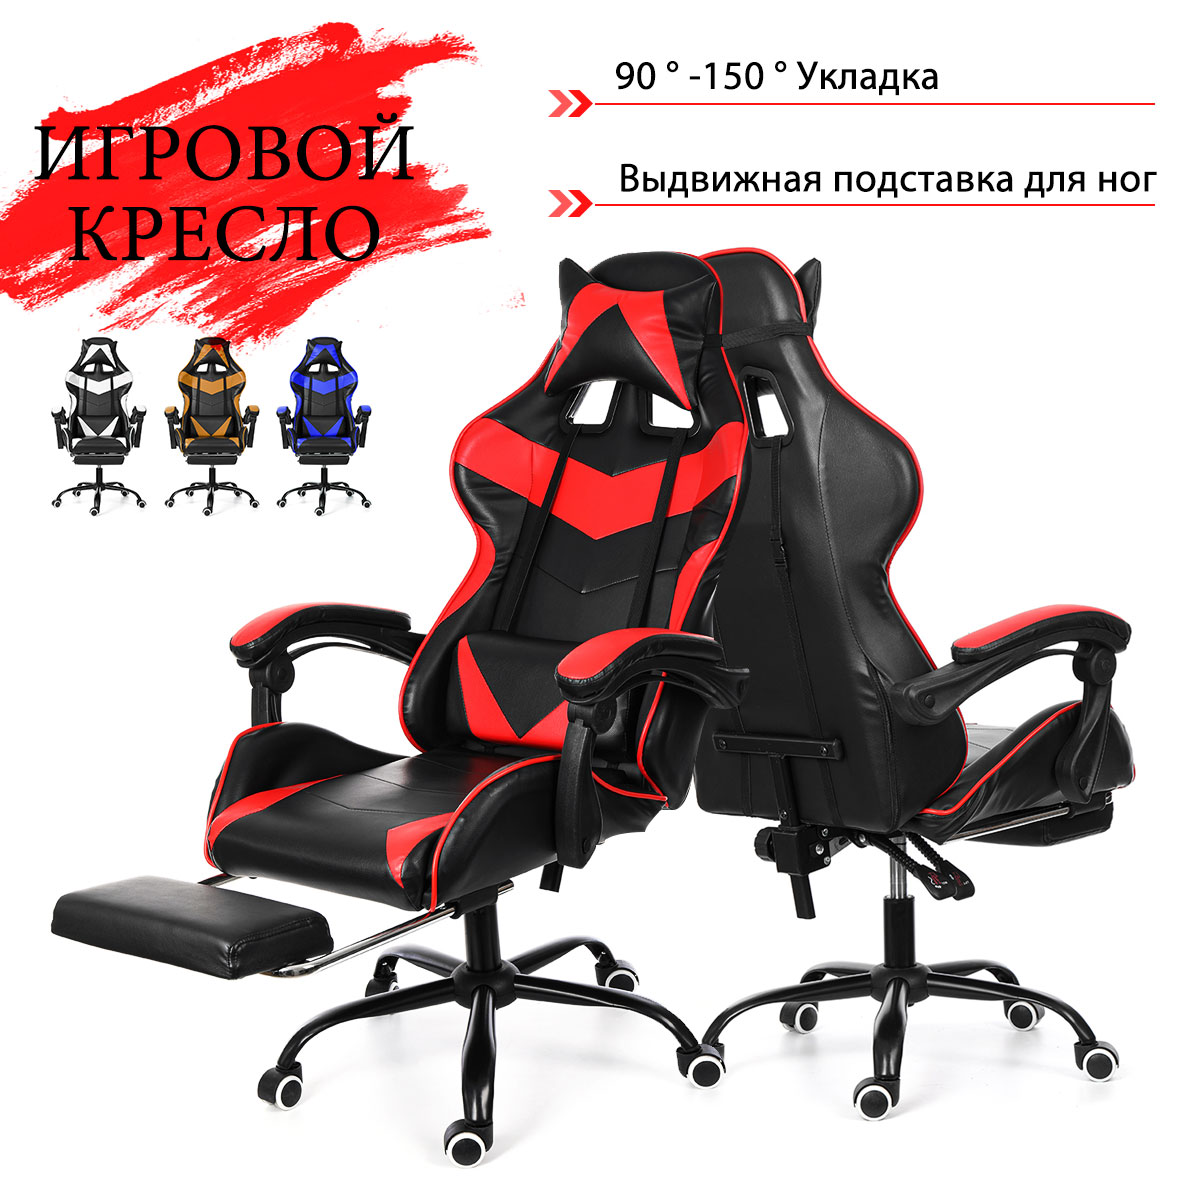 Wcg Computer Gaming Chair Internet Seat Cafe Household Lounge Office Chair For Silla Gamer Adjustable Lifting Tilt Swivel Chair